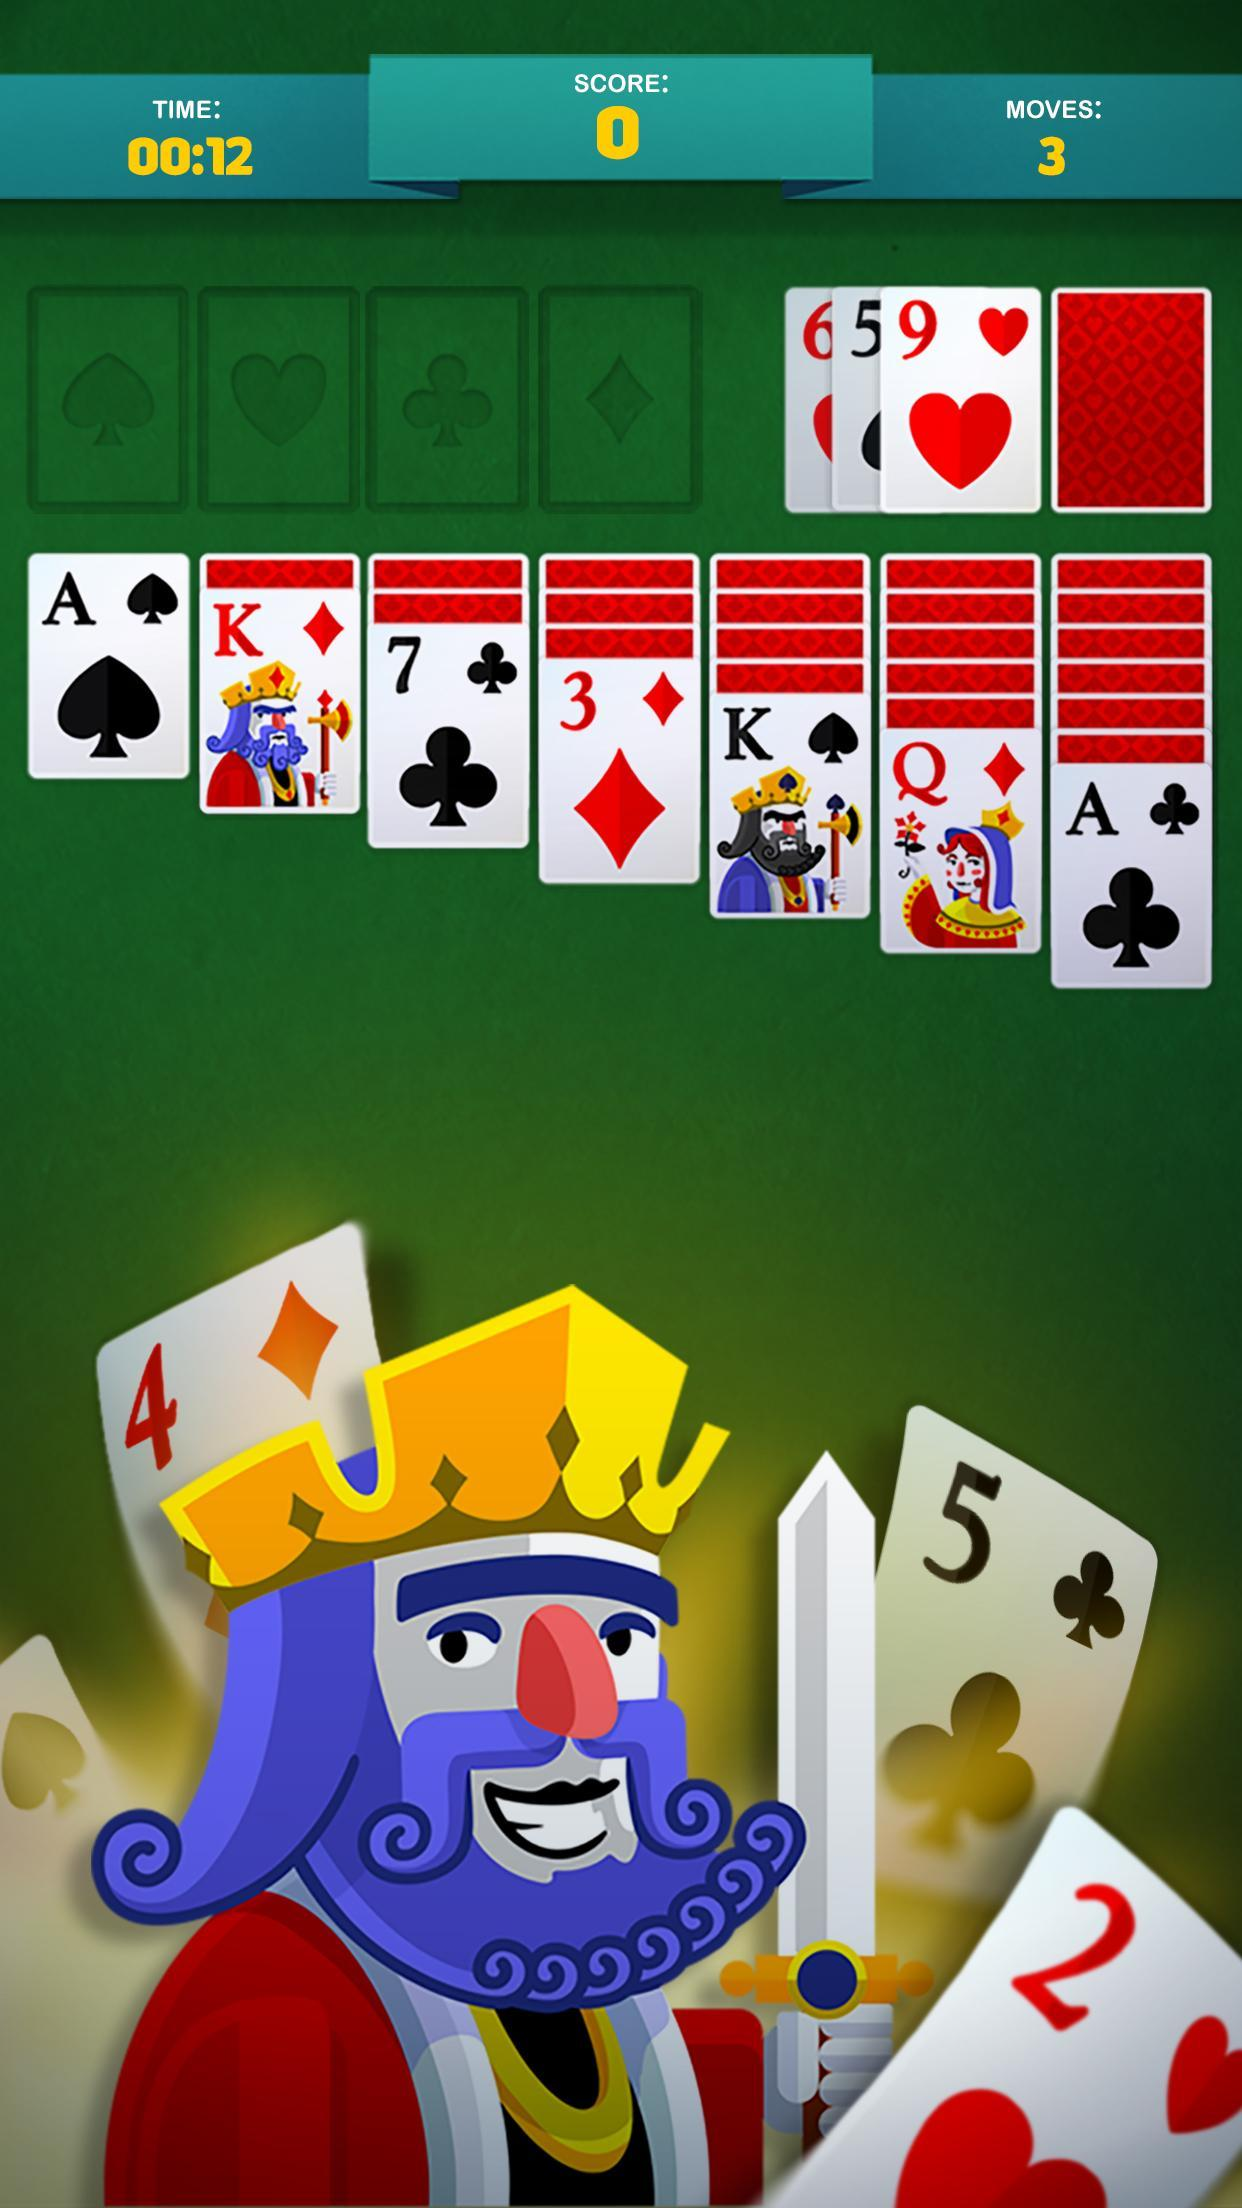 Solitaire Card Game Classic 1.0.16 Screenshot 4